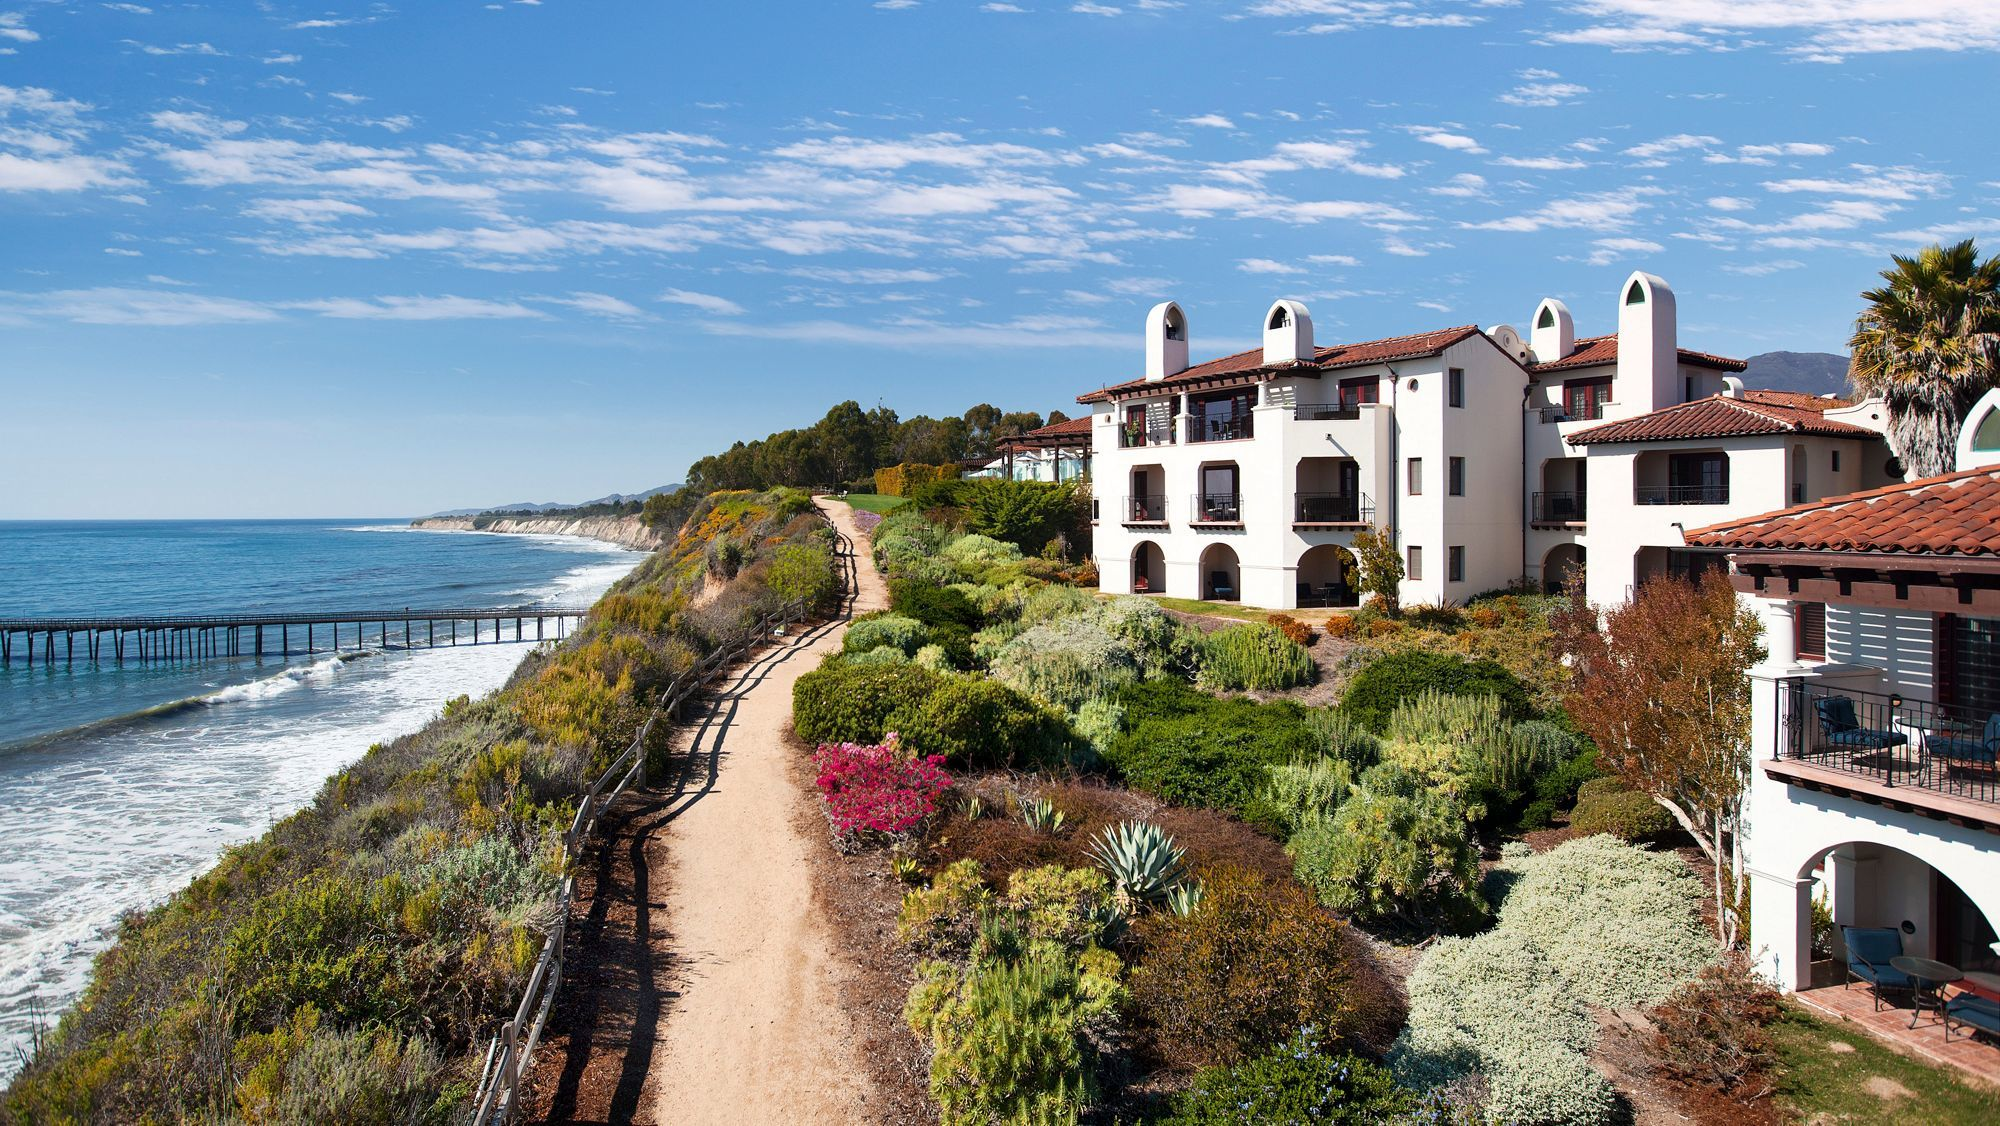 The Ritz Carlton Bacara Santa Barbara